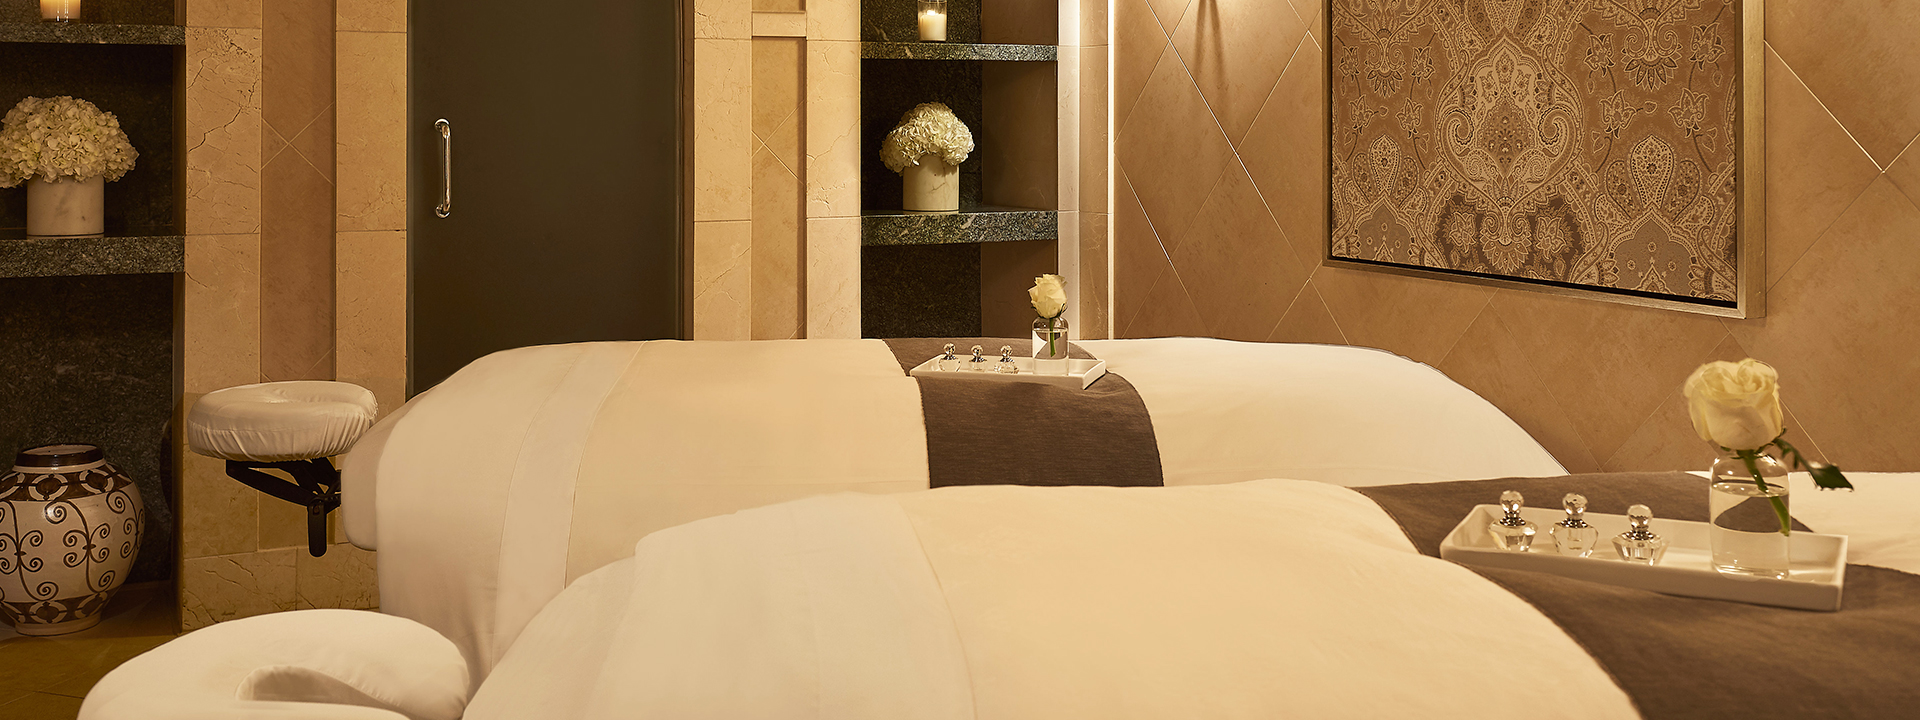 The quiet cocoon of a spa treatment room